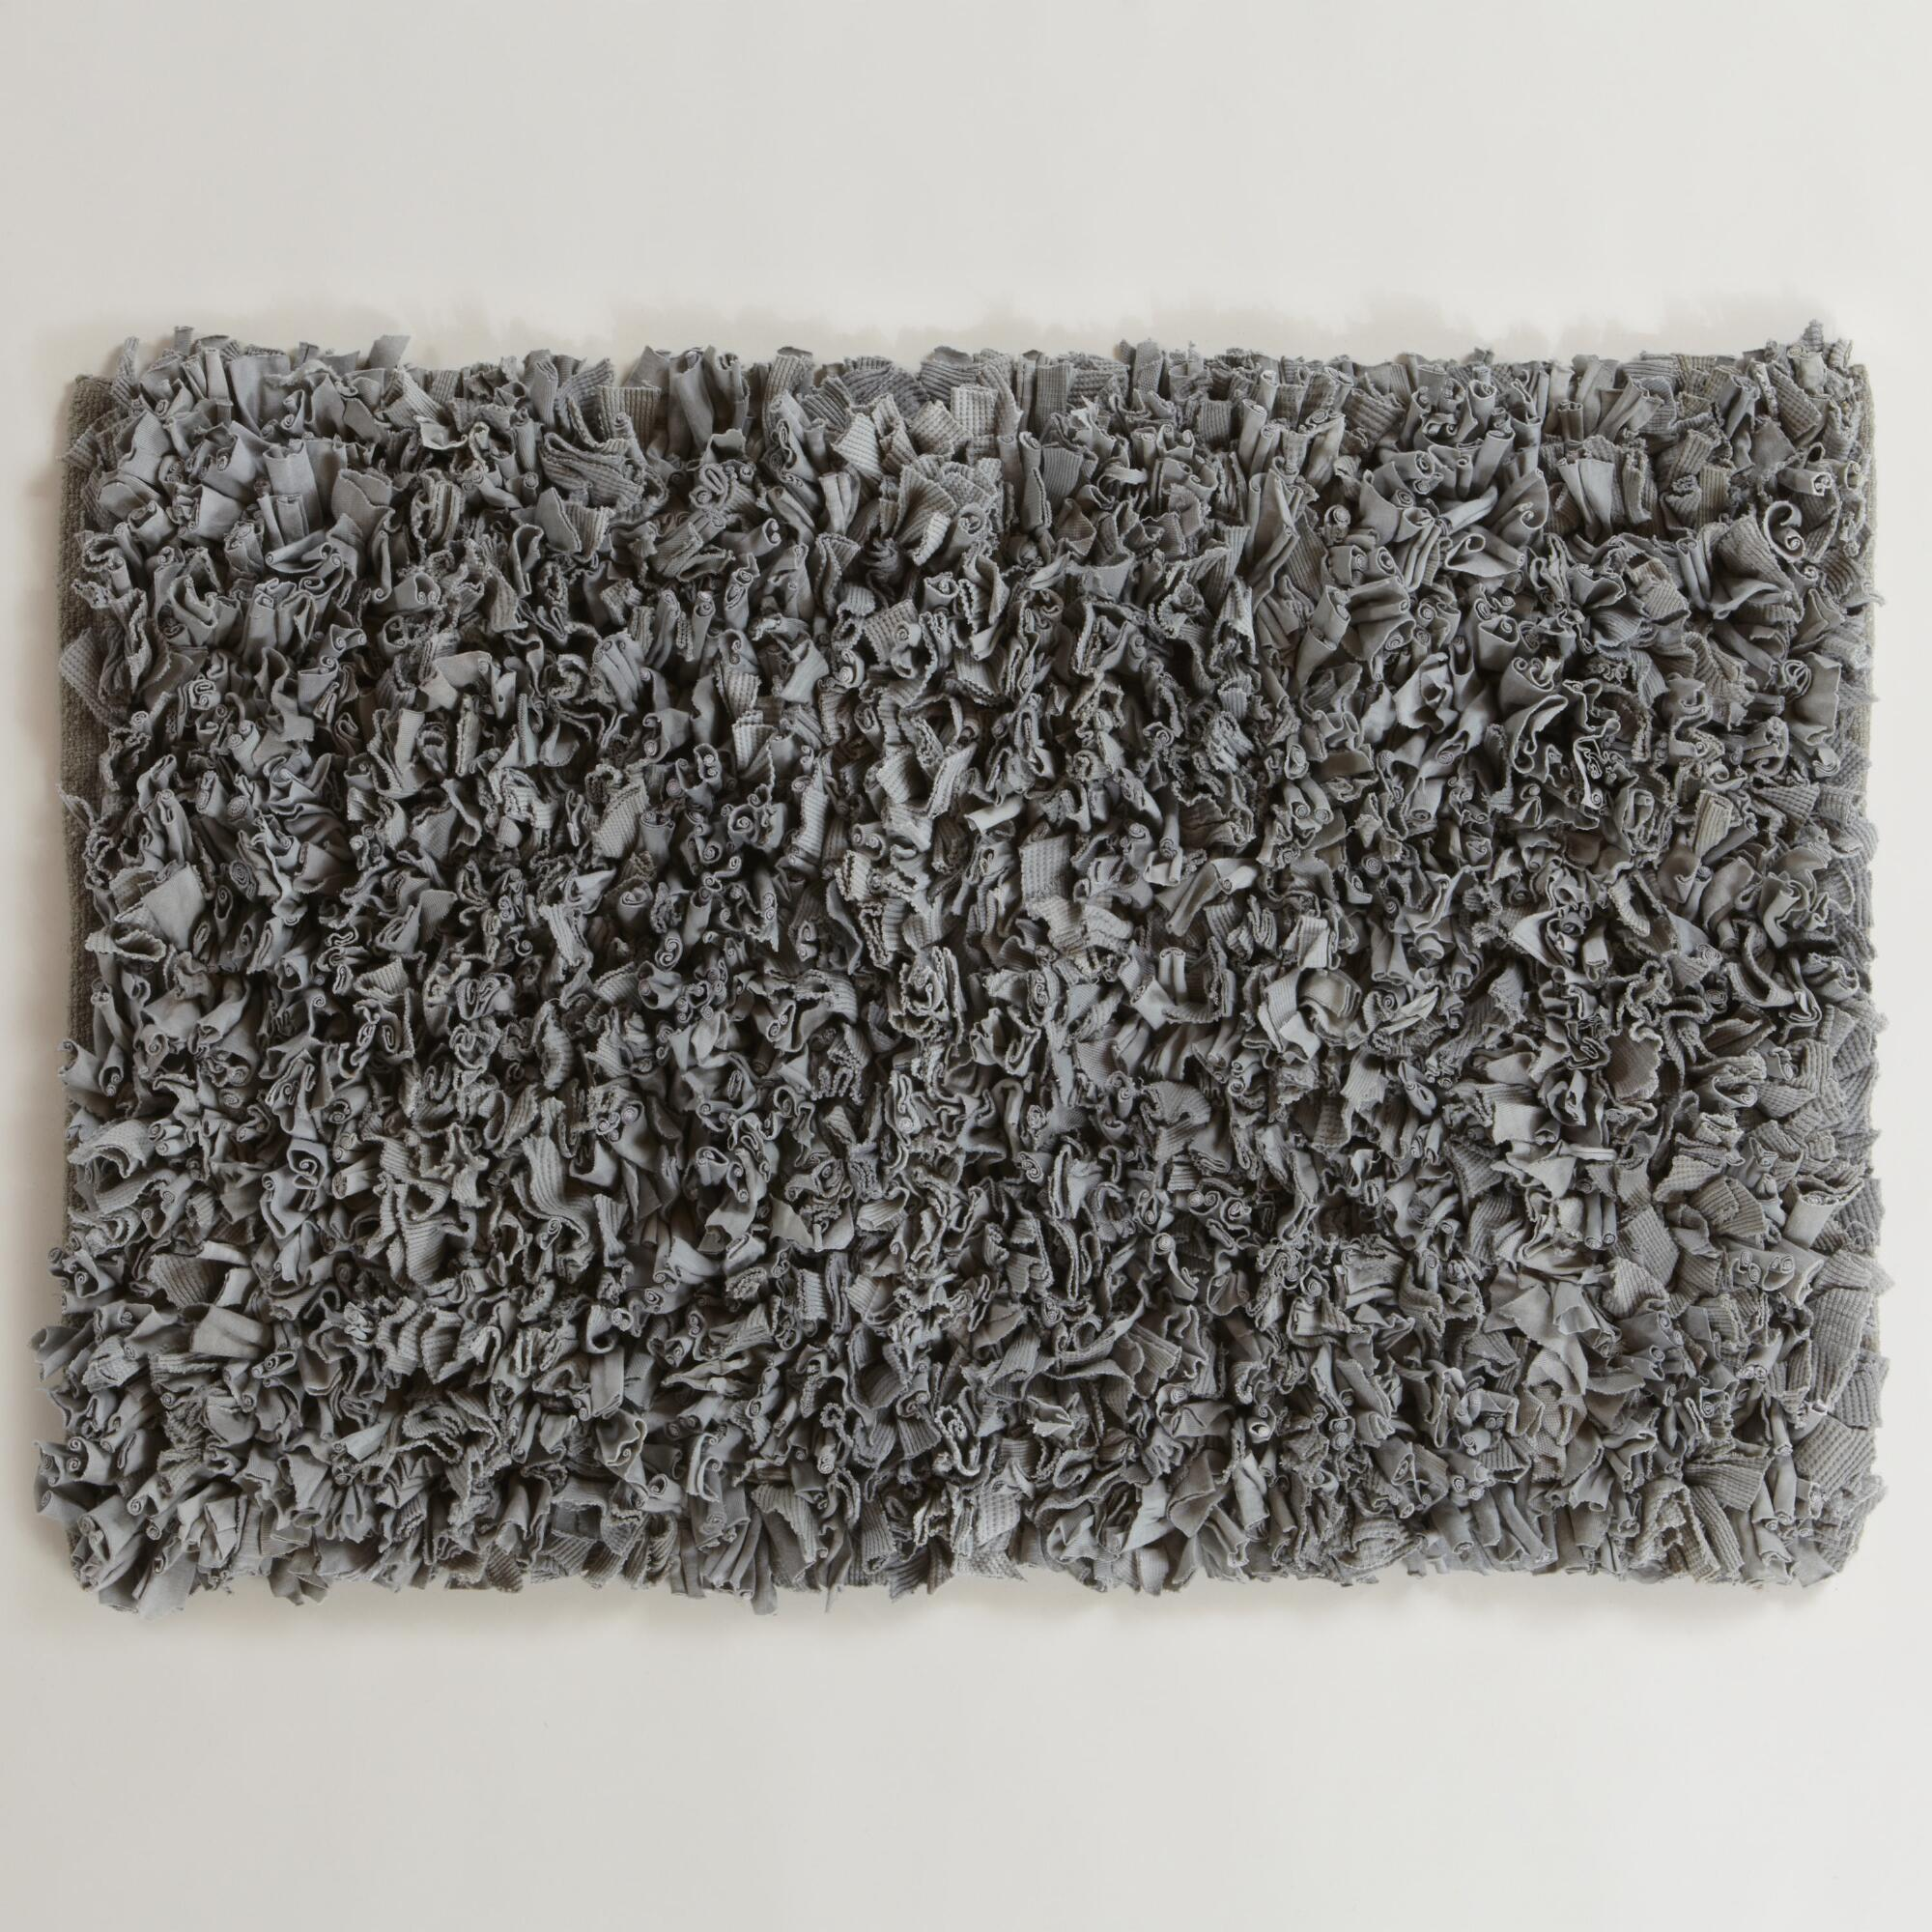 Lastest Pamper Every Part Of Yourself, And Wrap Your Home In Luxury With This Soft Turkish Cotton Bath Mat Whether Its Waiting For You After A Shower Or Soaking Up Water